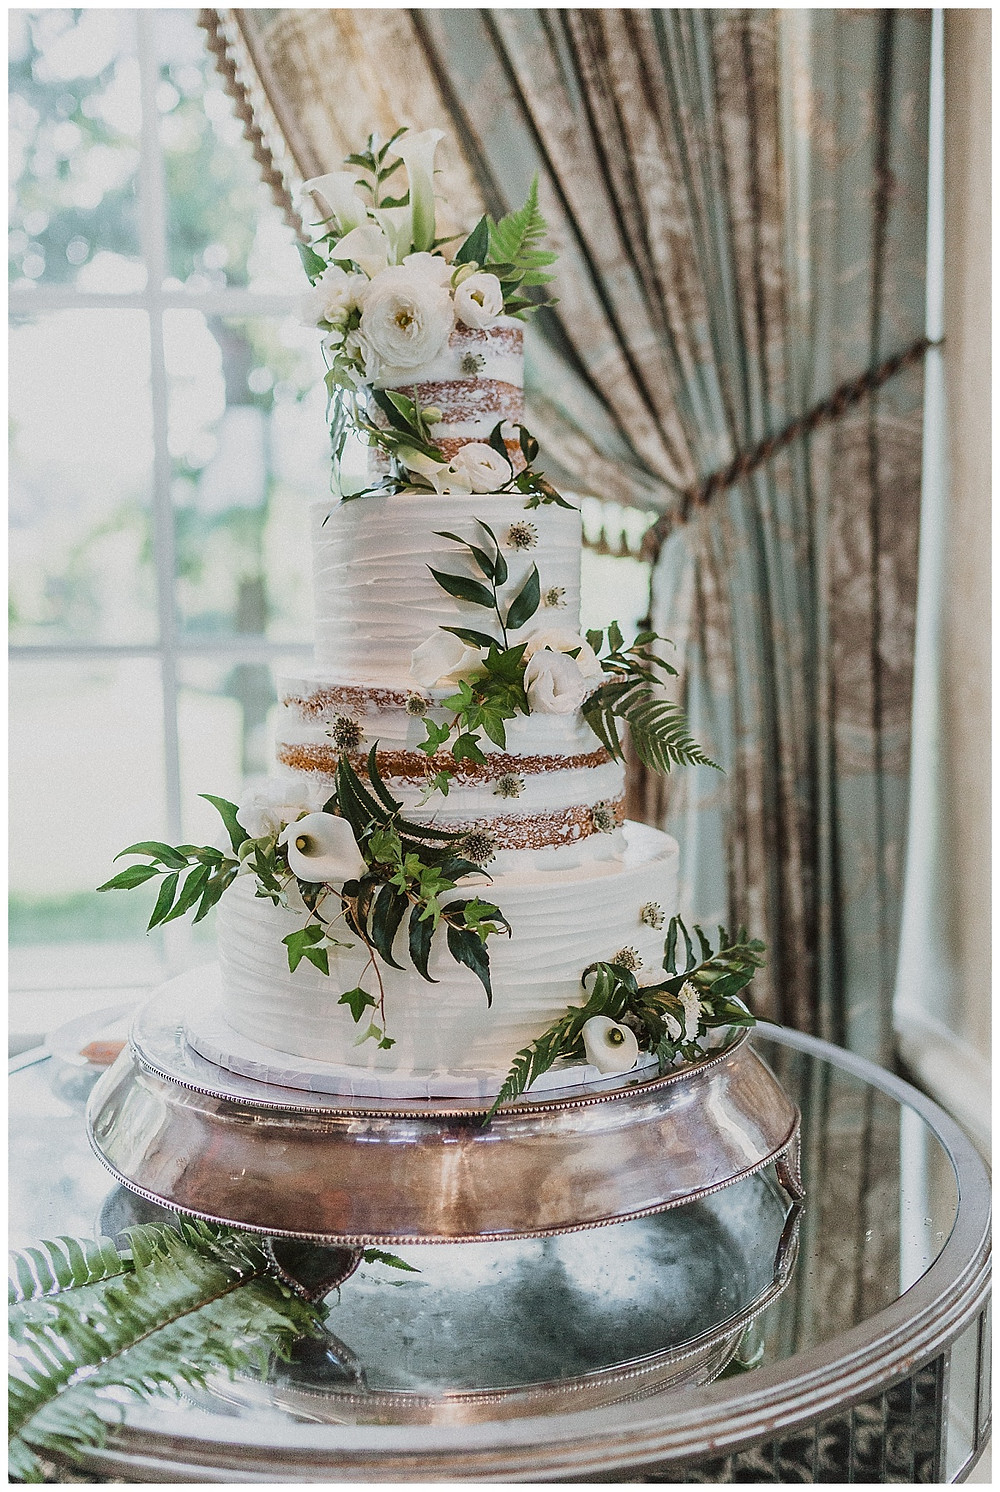 Simple White Wedding Cake with Greenery & Roses